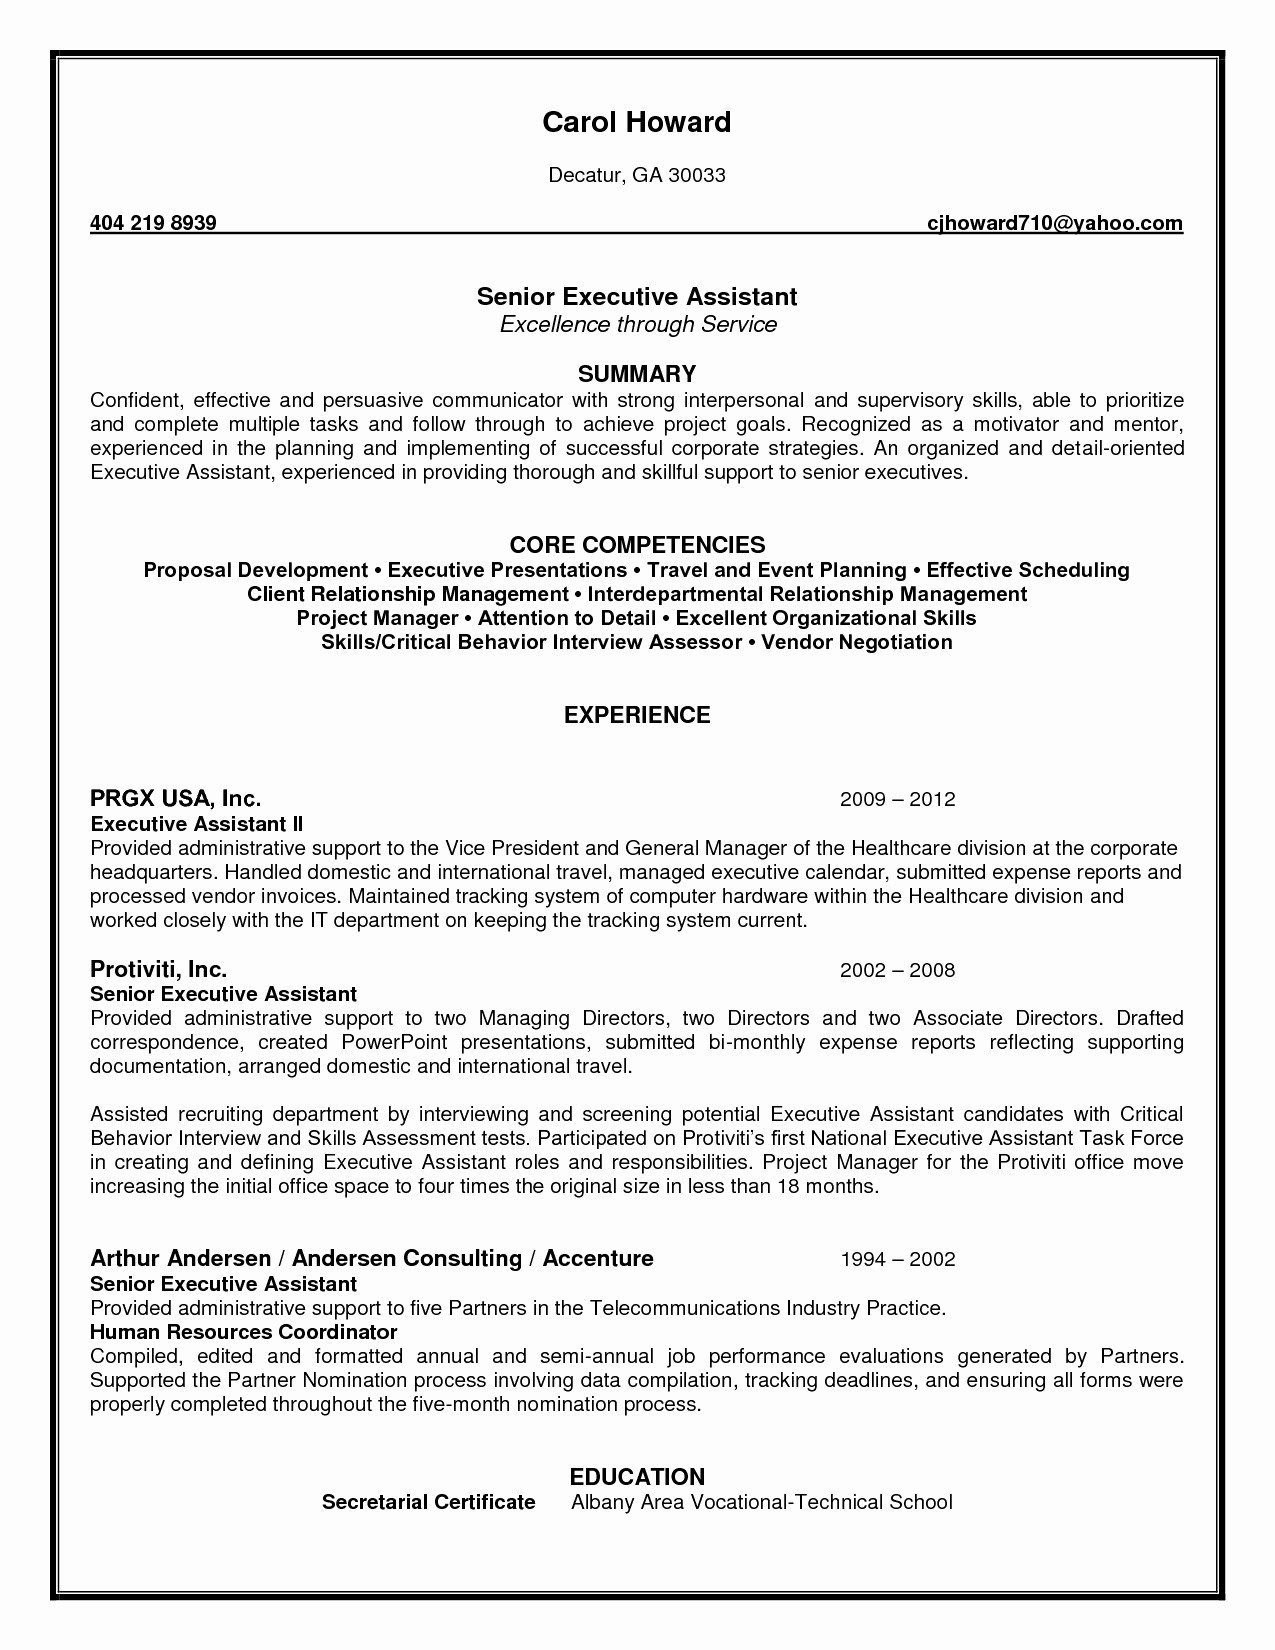 Core Competencies Resume - Executive assistant Resumes Unique Resume Template Executive